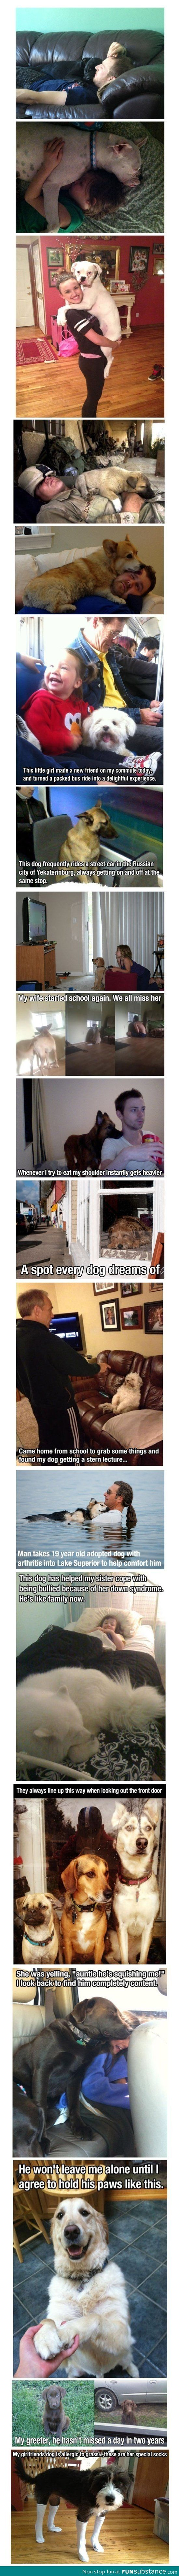 Dogs are great